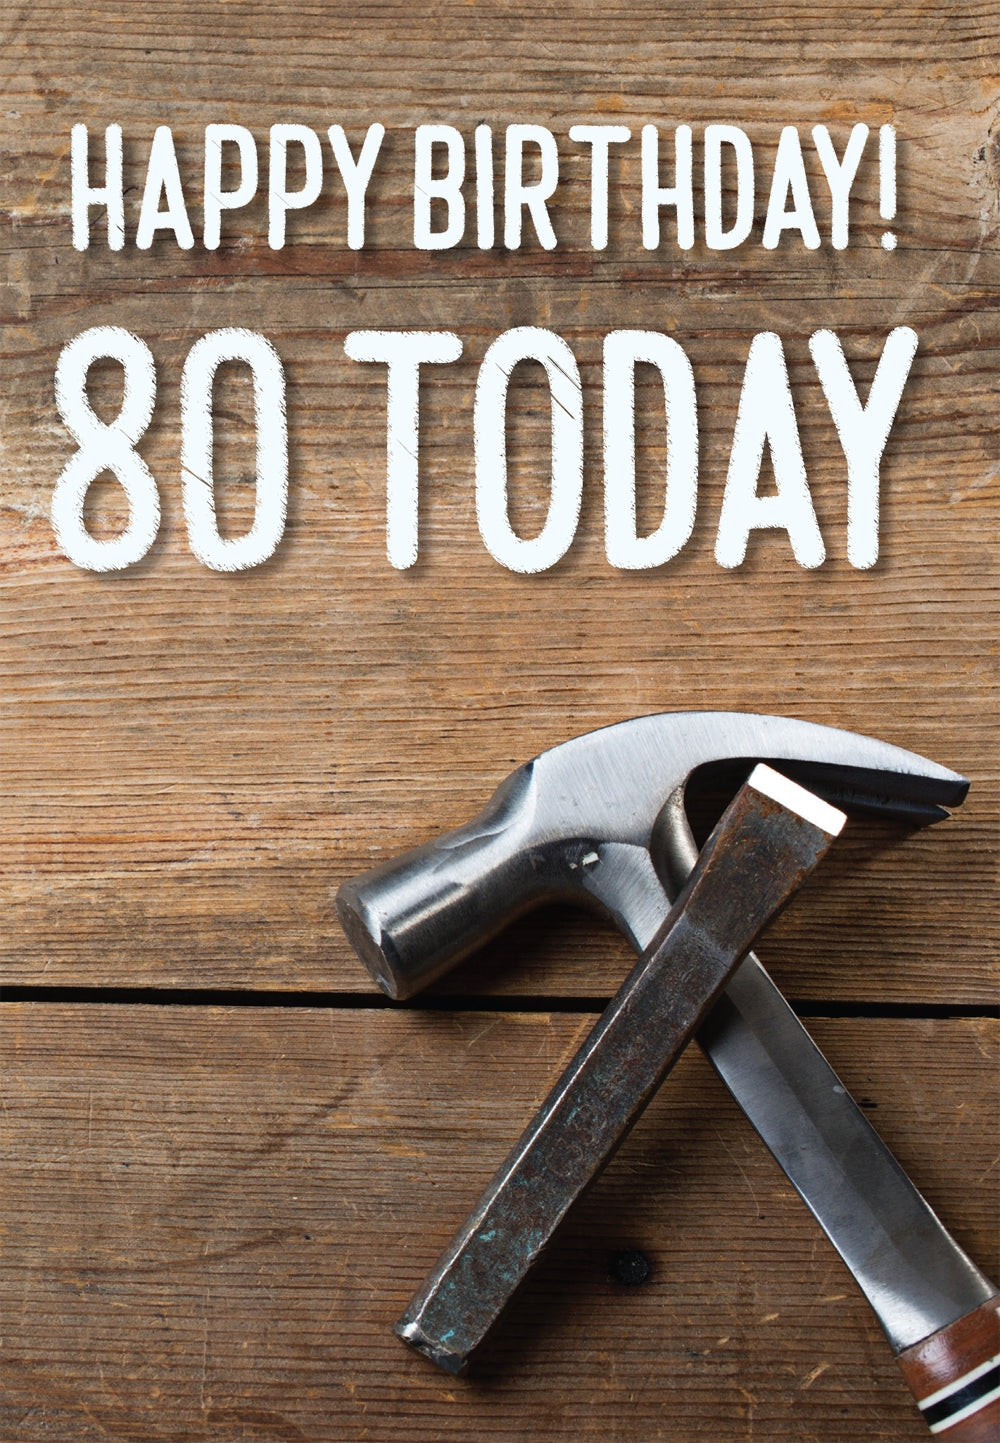 Happy Birthday 80 Today -  Tools Std Card Gloss (6 Pack)Happy Birthday 80 Today -  Tools Std Card Gloss (6 Pack)